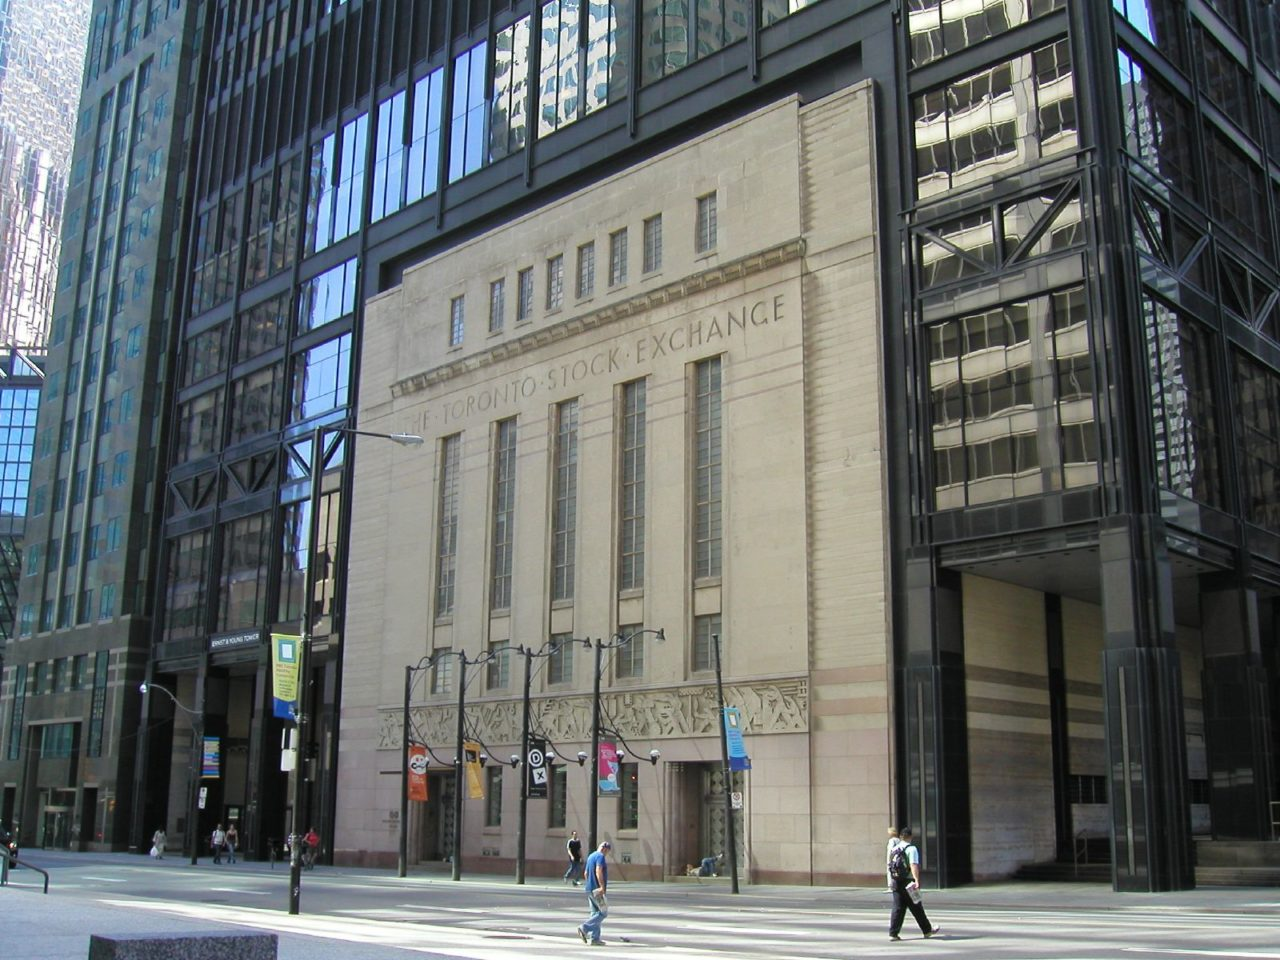 Toronto_Stock_Exchange-1280x960.jpg